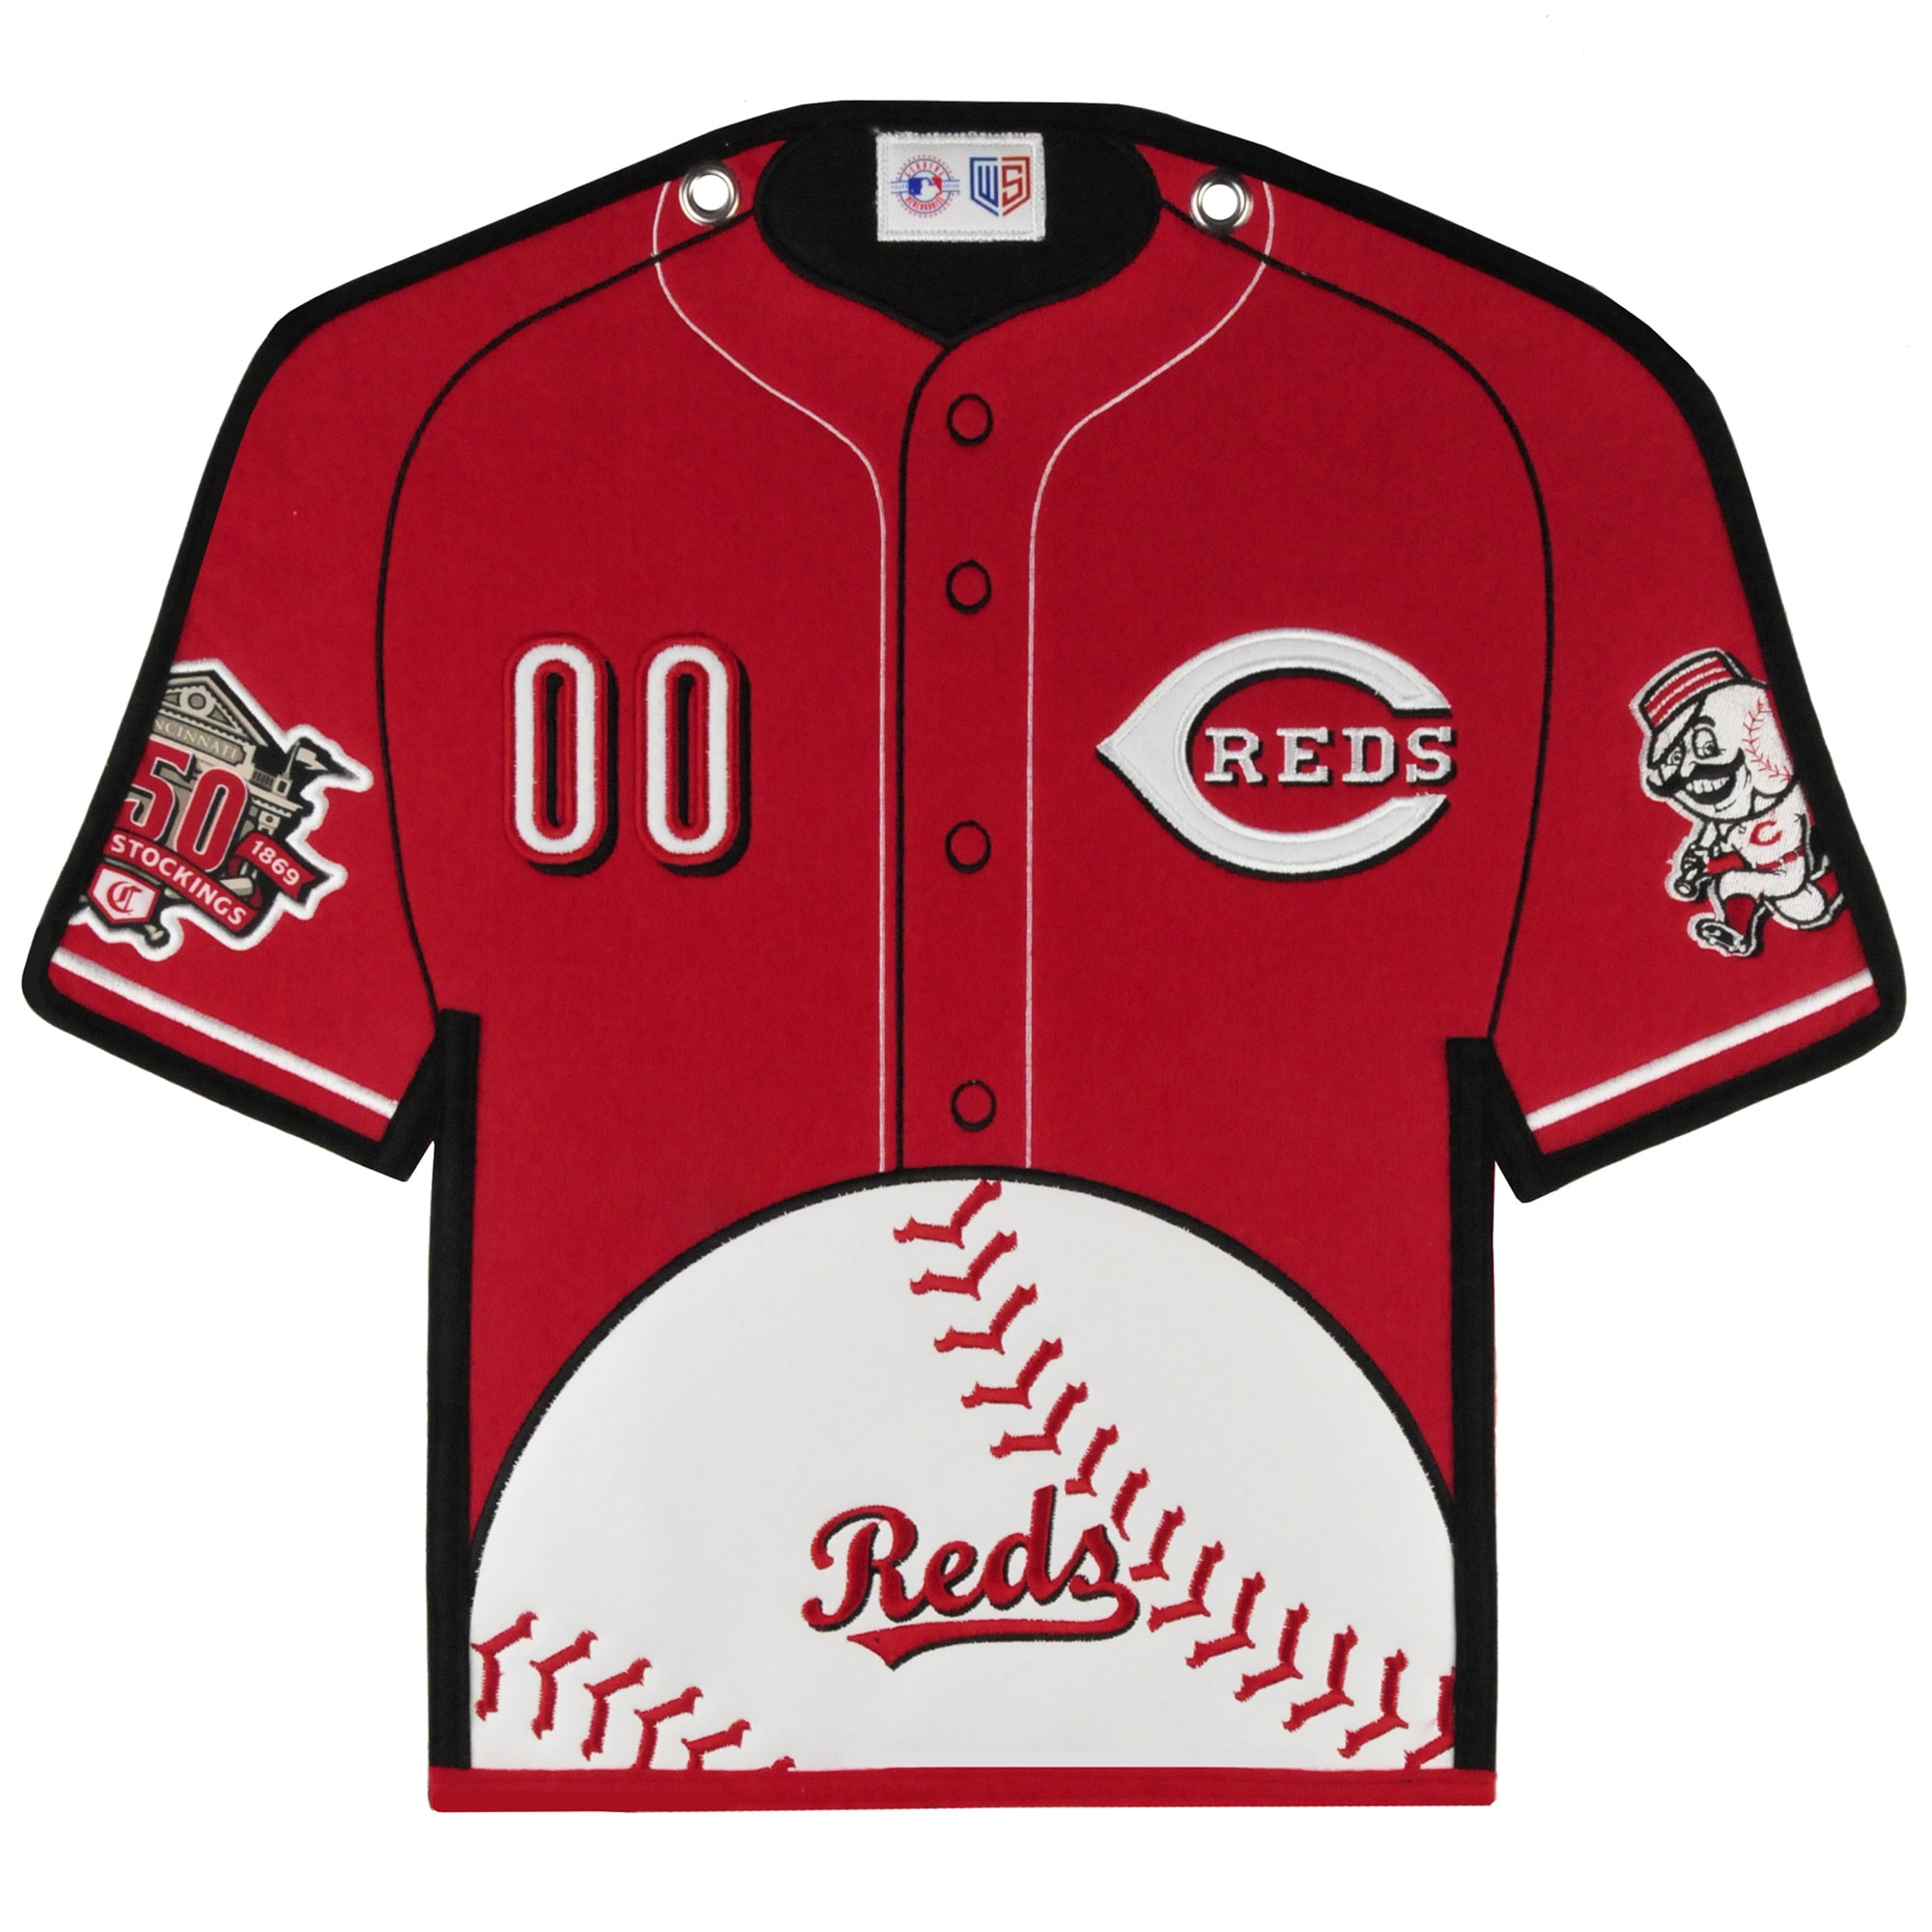 Cincinnati Reds 14'' x 22'' Jersey Traditions Banner - Red/White